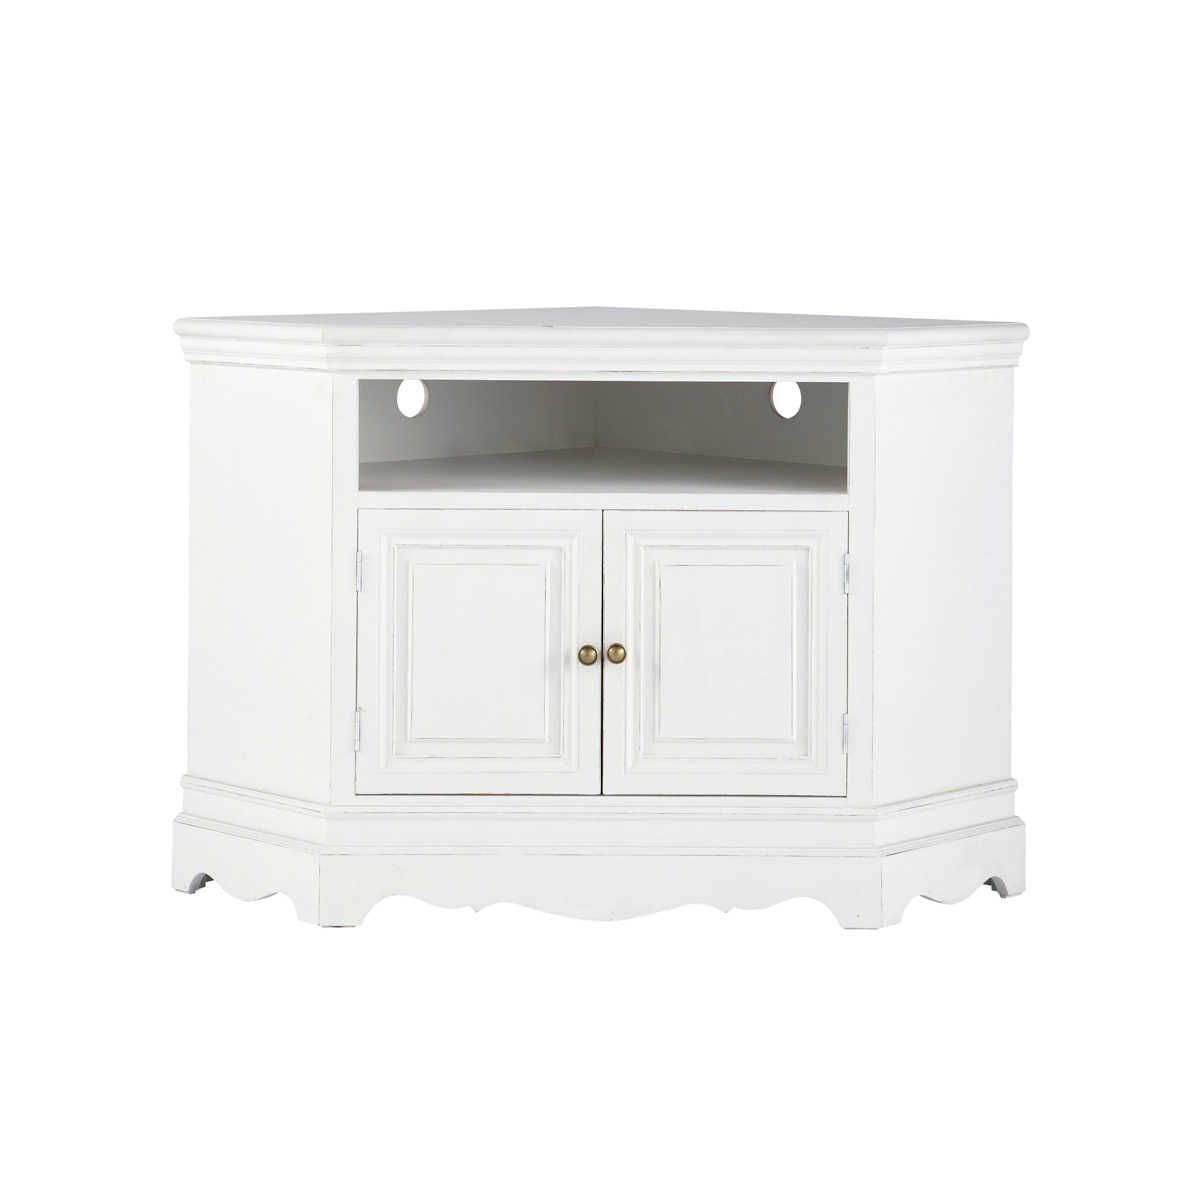 Paulownia wood corner TV unit in white W 105cm Joséphine | Our home..